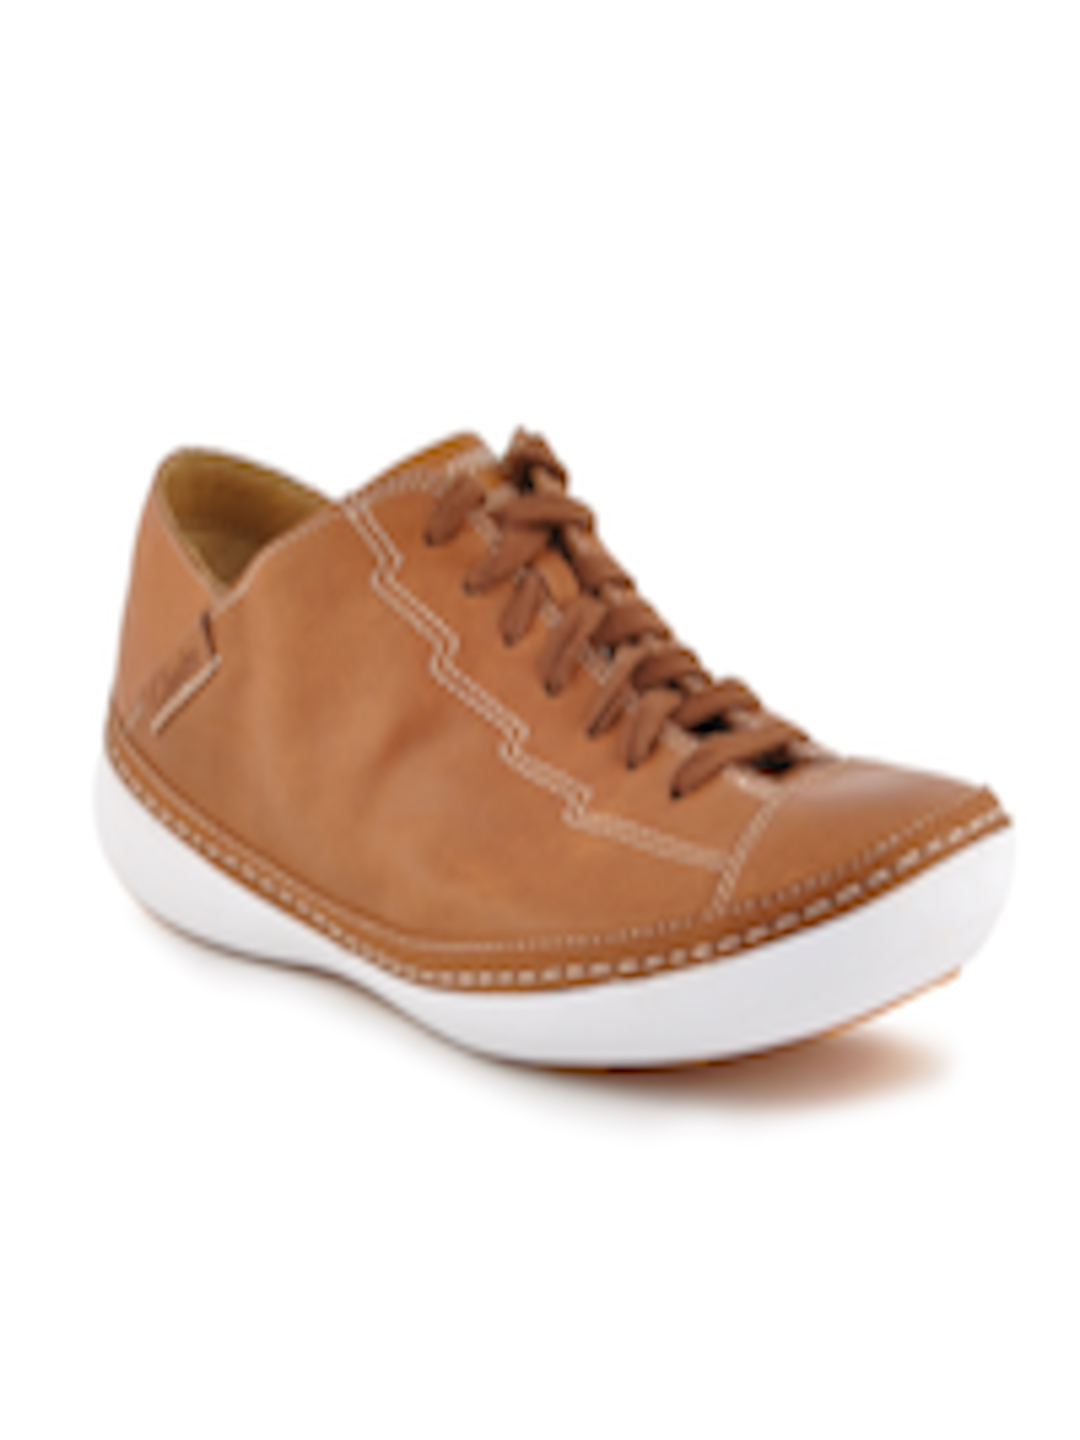 Buy Clarks Men Rocco Fuse Brown Casual Shoes